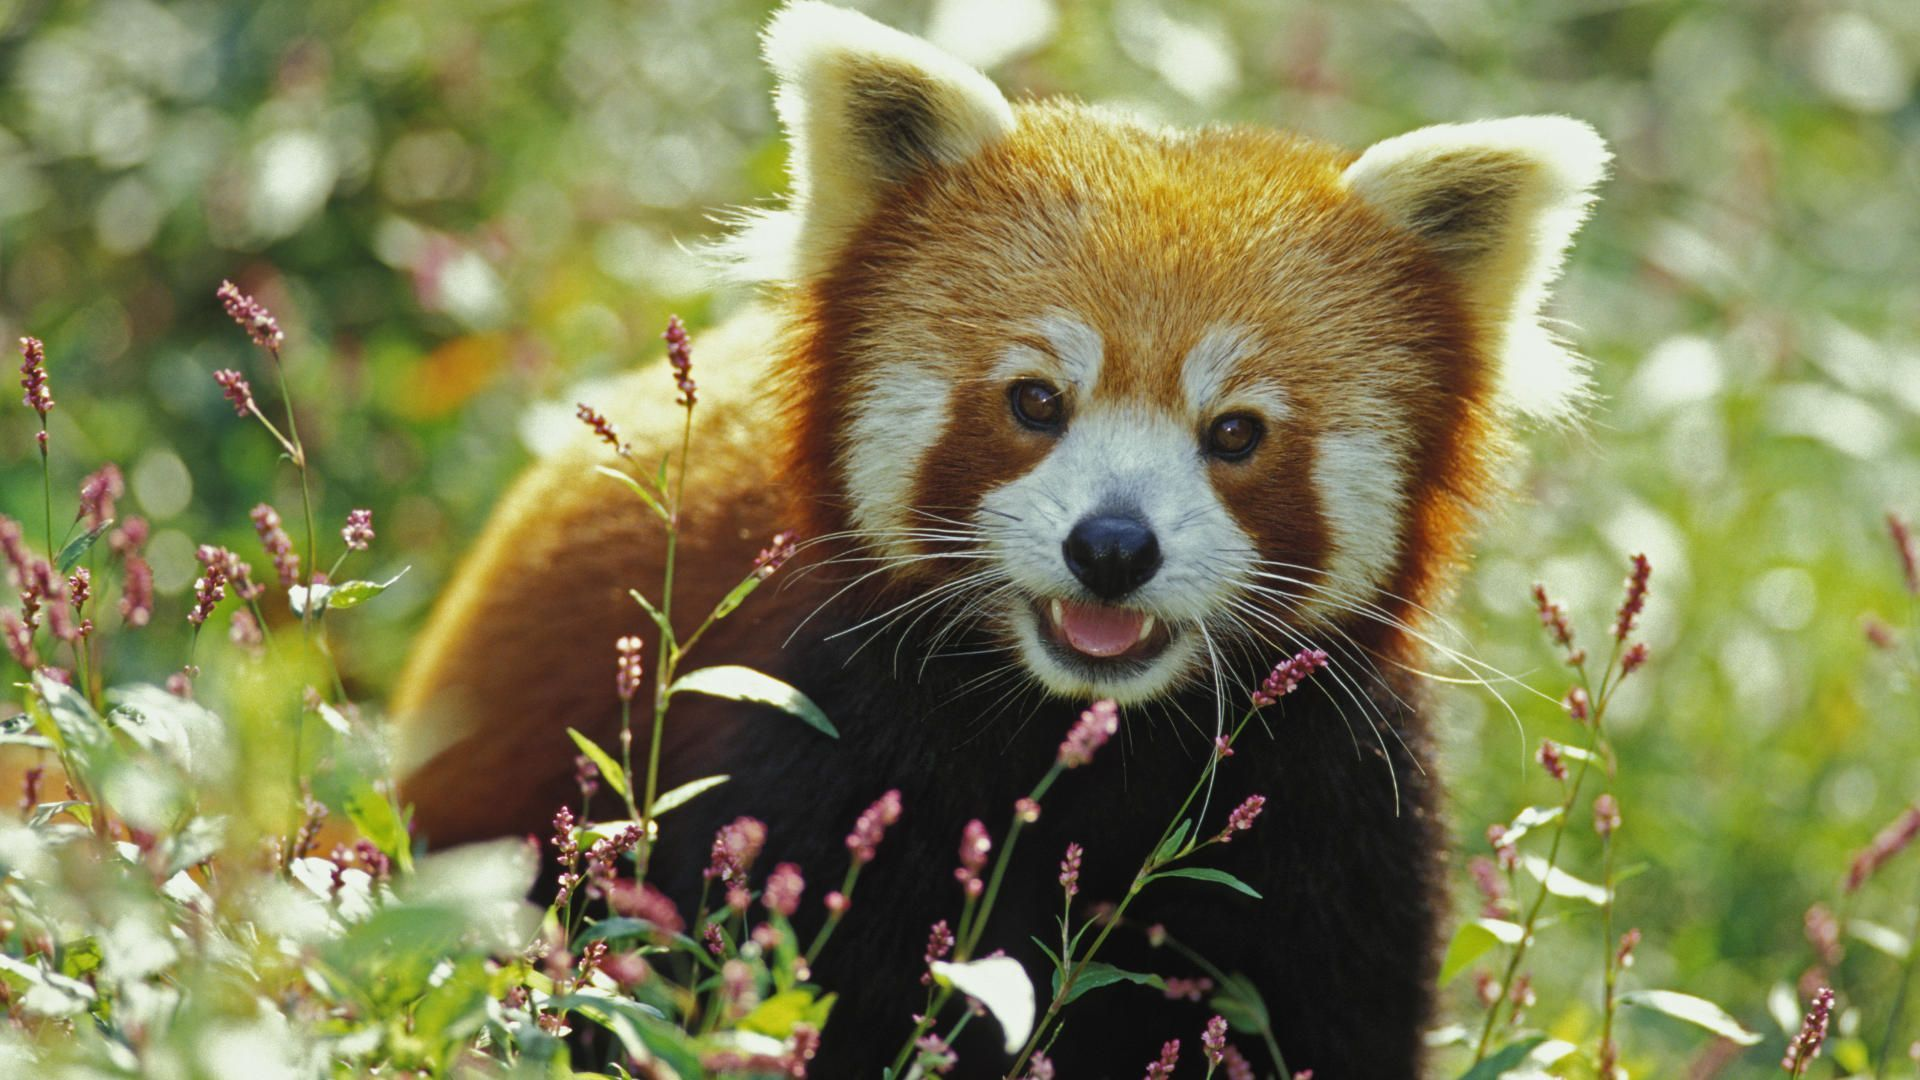 Baby Red Panda Picture Hdq Cover Desktop Background Red Panda 434196 Hd Wallpaper Backgrounds Download